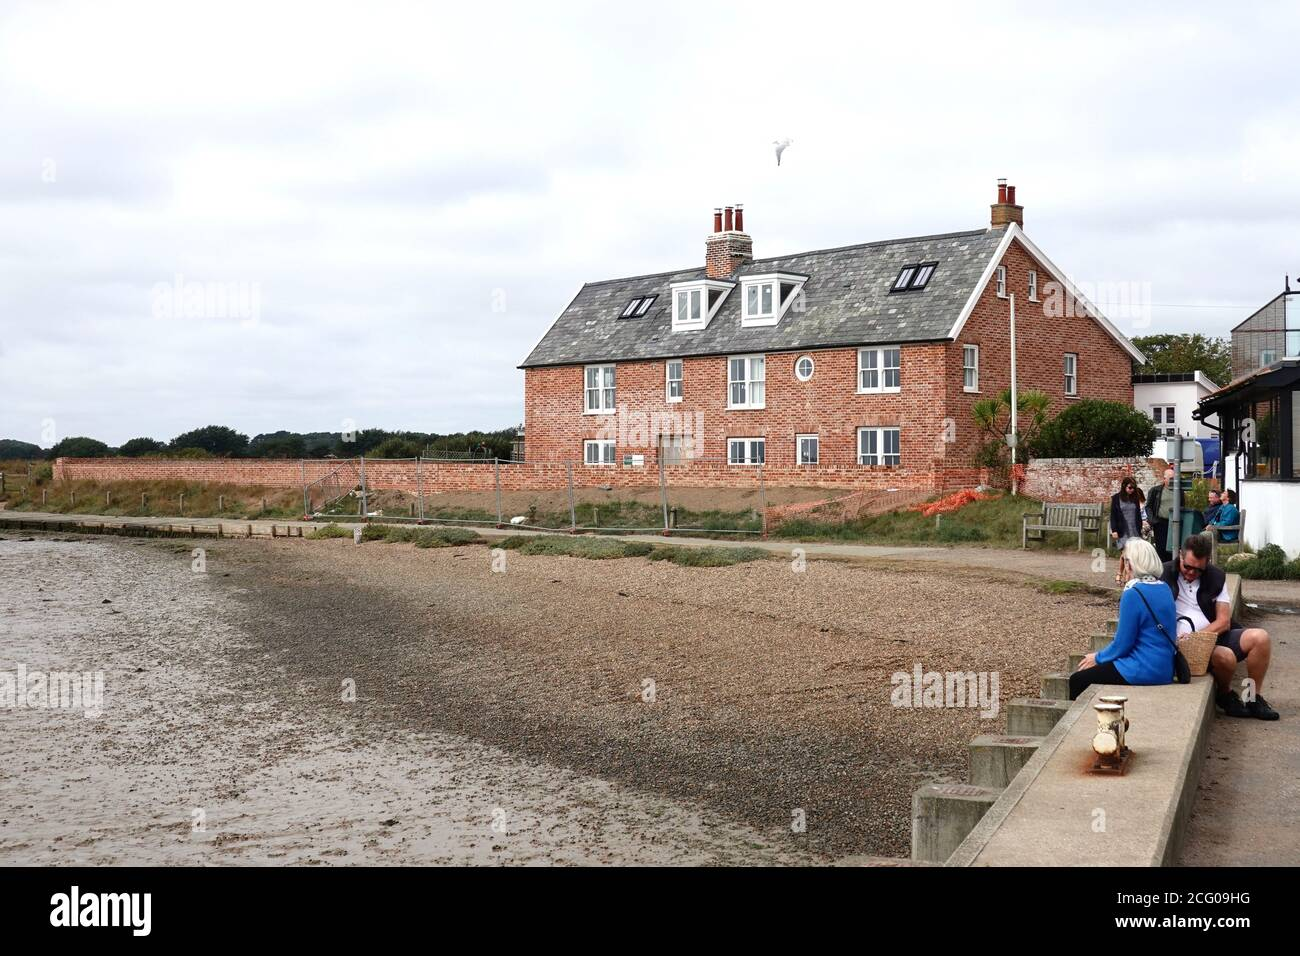 Orford, Suffolk, UK - 8 September 2020: New houses overlooking the River Alde. Stock Photo